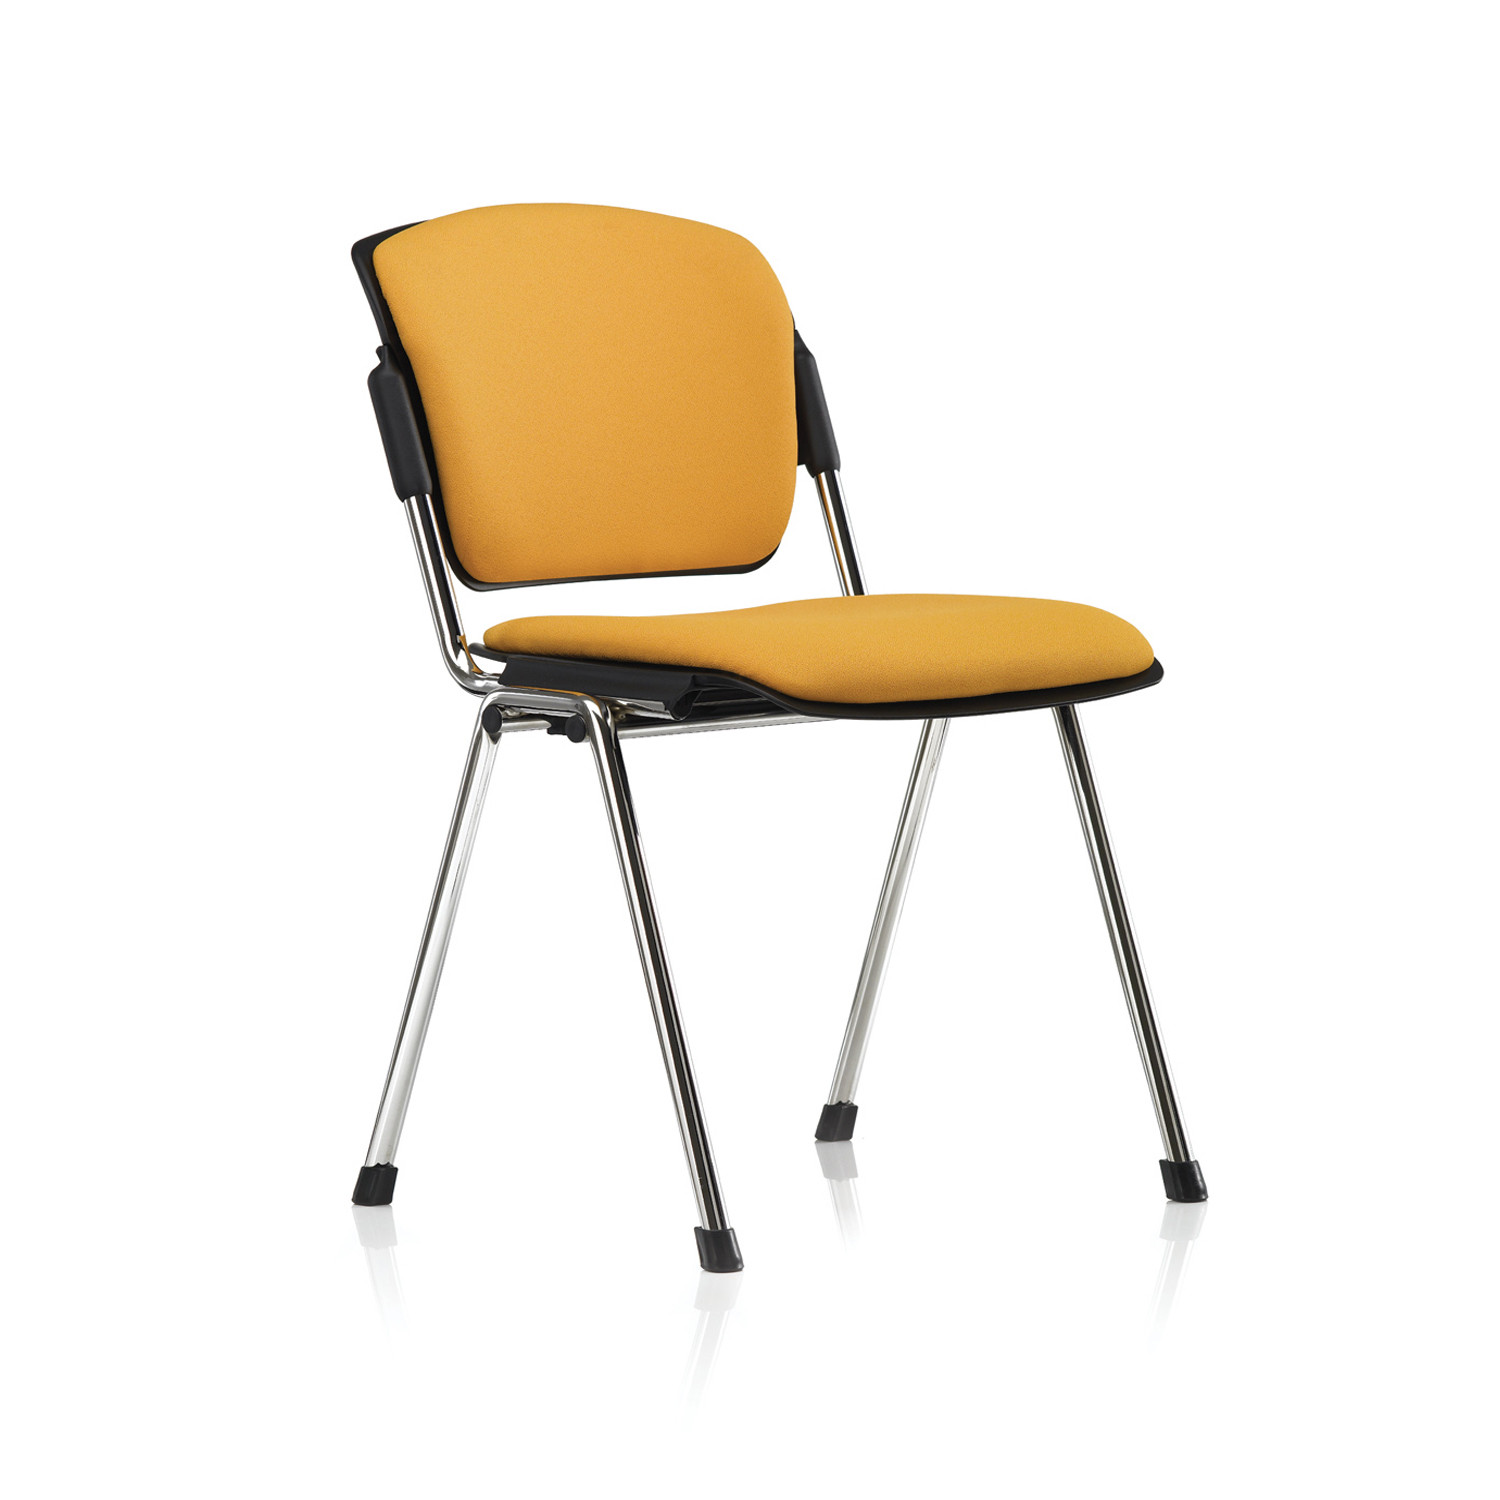 Series Stacking Chairs